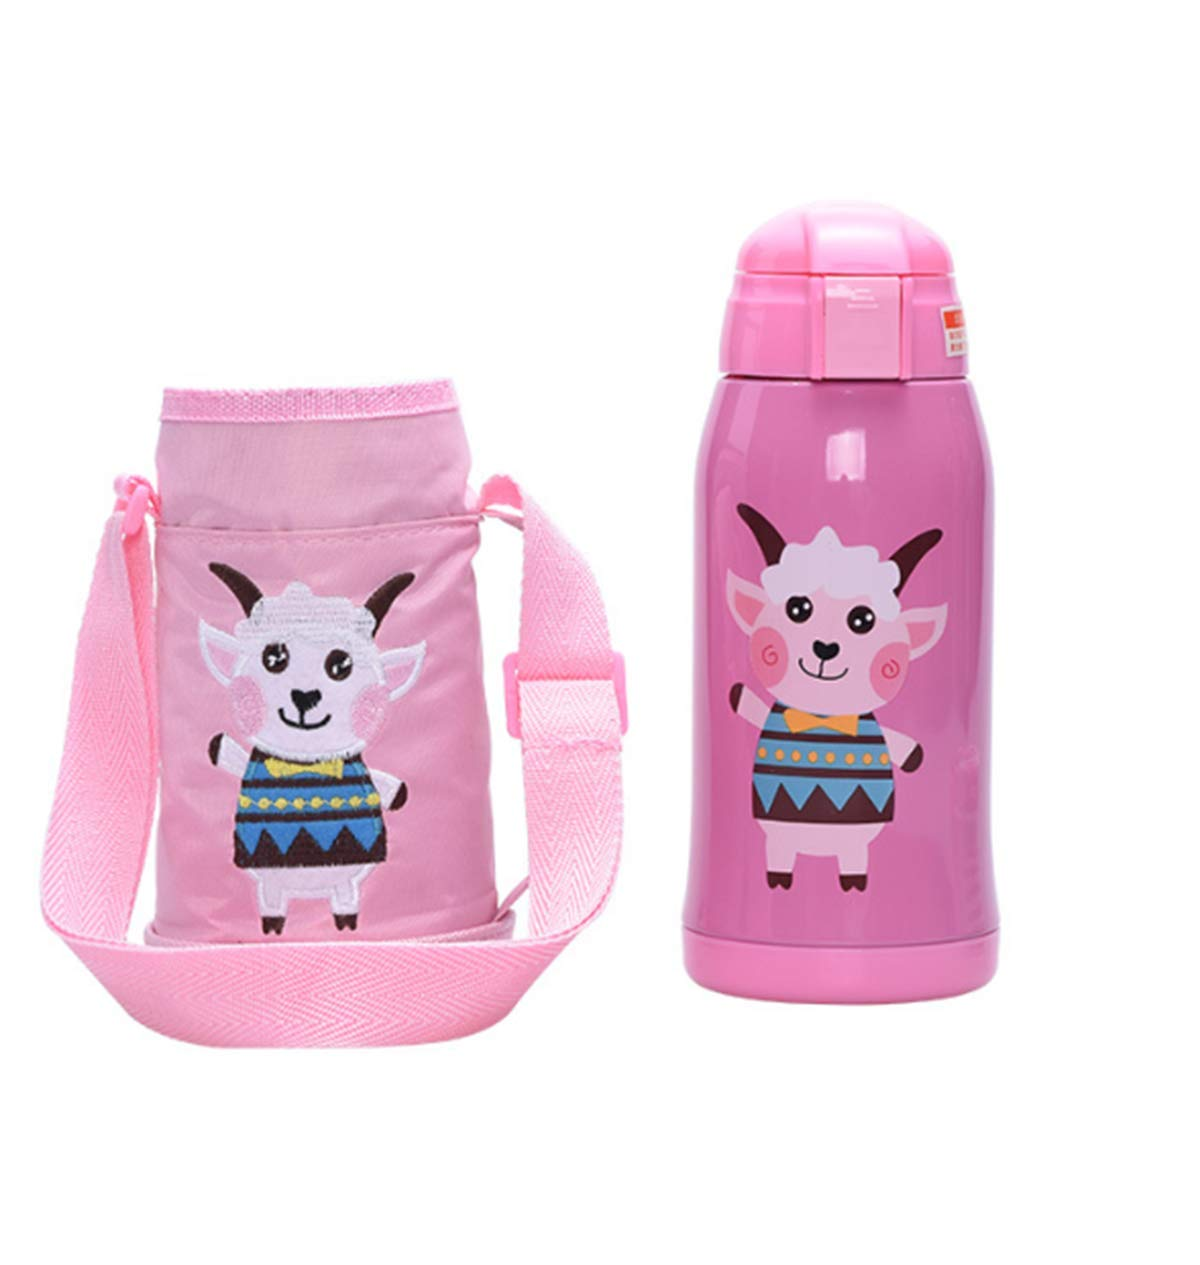 XIUHAO Children's Thermos, Vacuum Stainless Steel Water Bottle with Soft Silicone Straw Cup Bag Long-Term Insulation Seal Does Not Leak for Children by XIUHAO